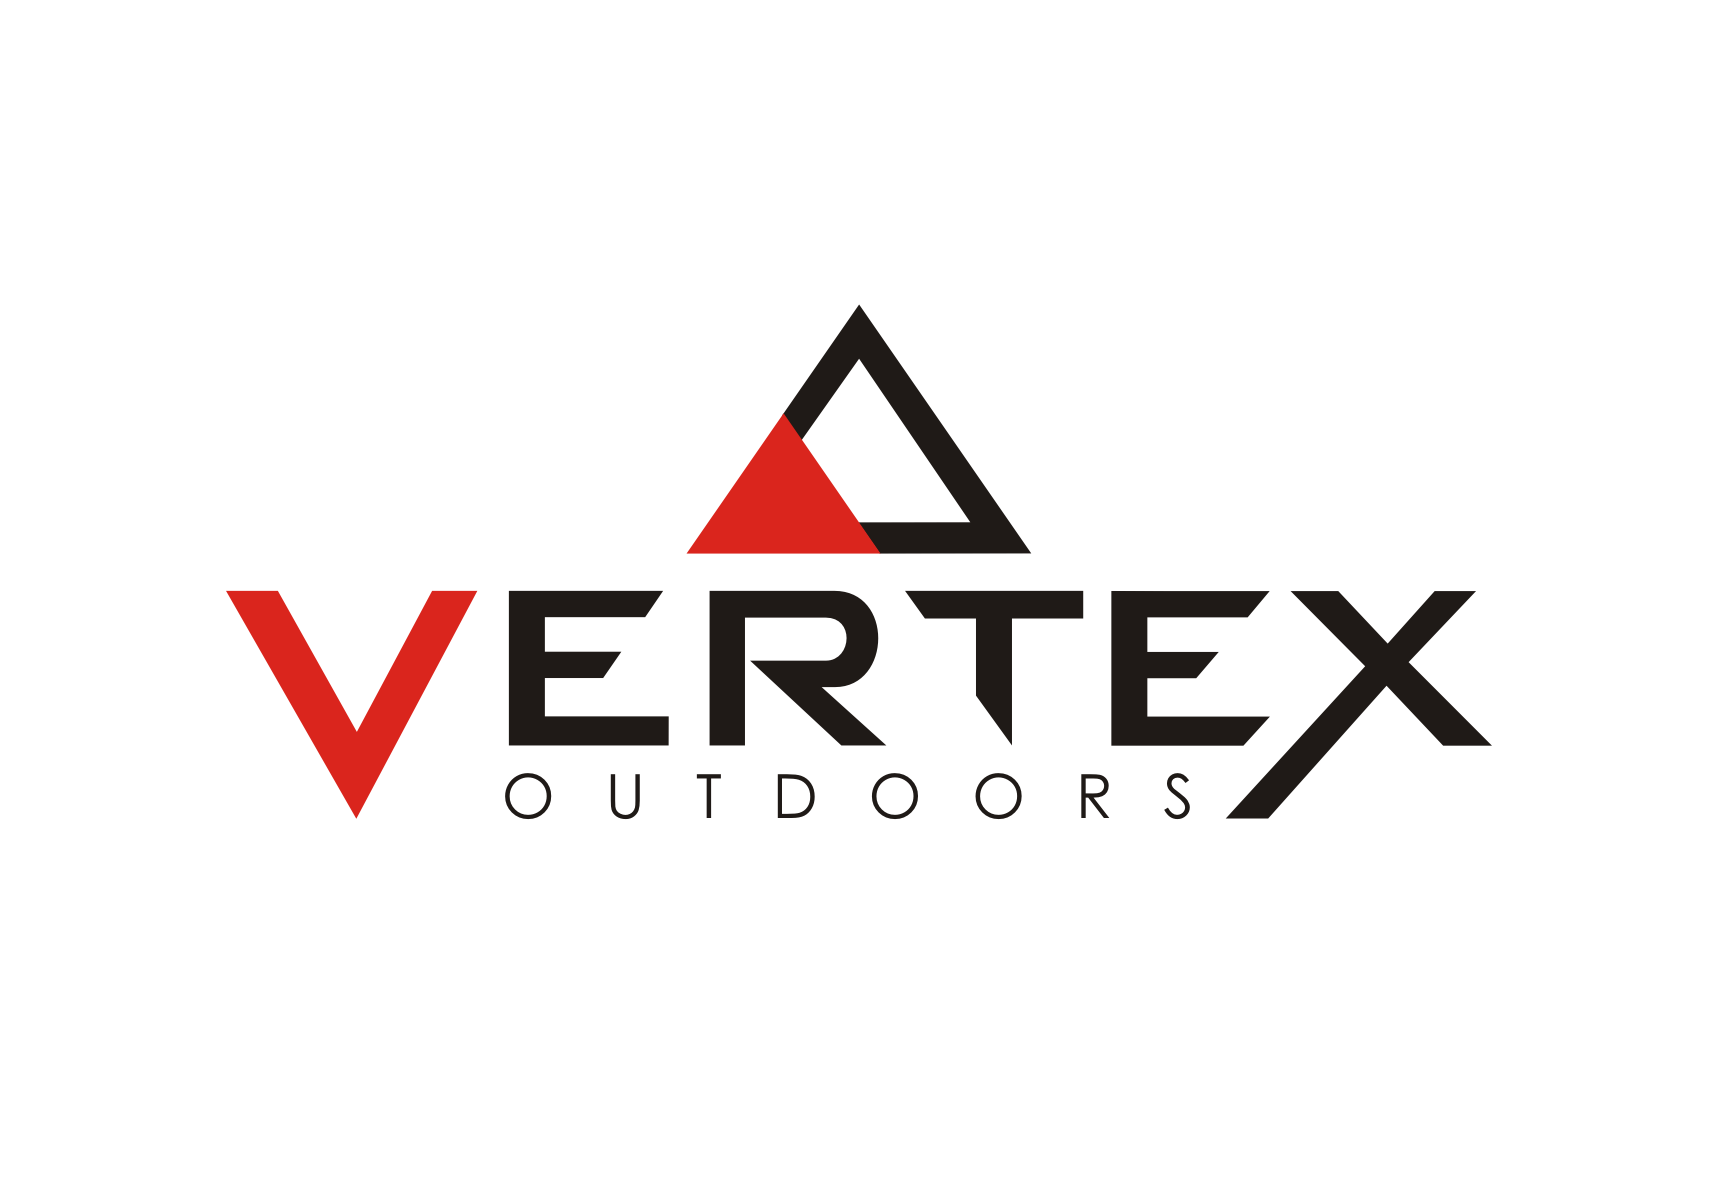 Help Vertex Outdoors with a new logo